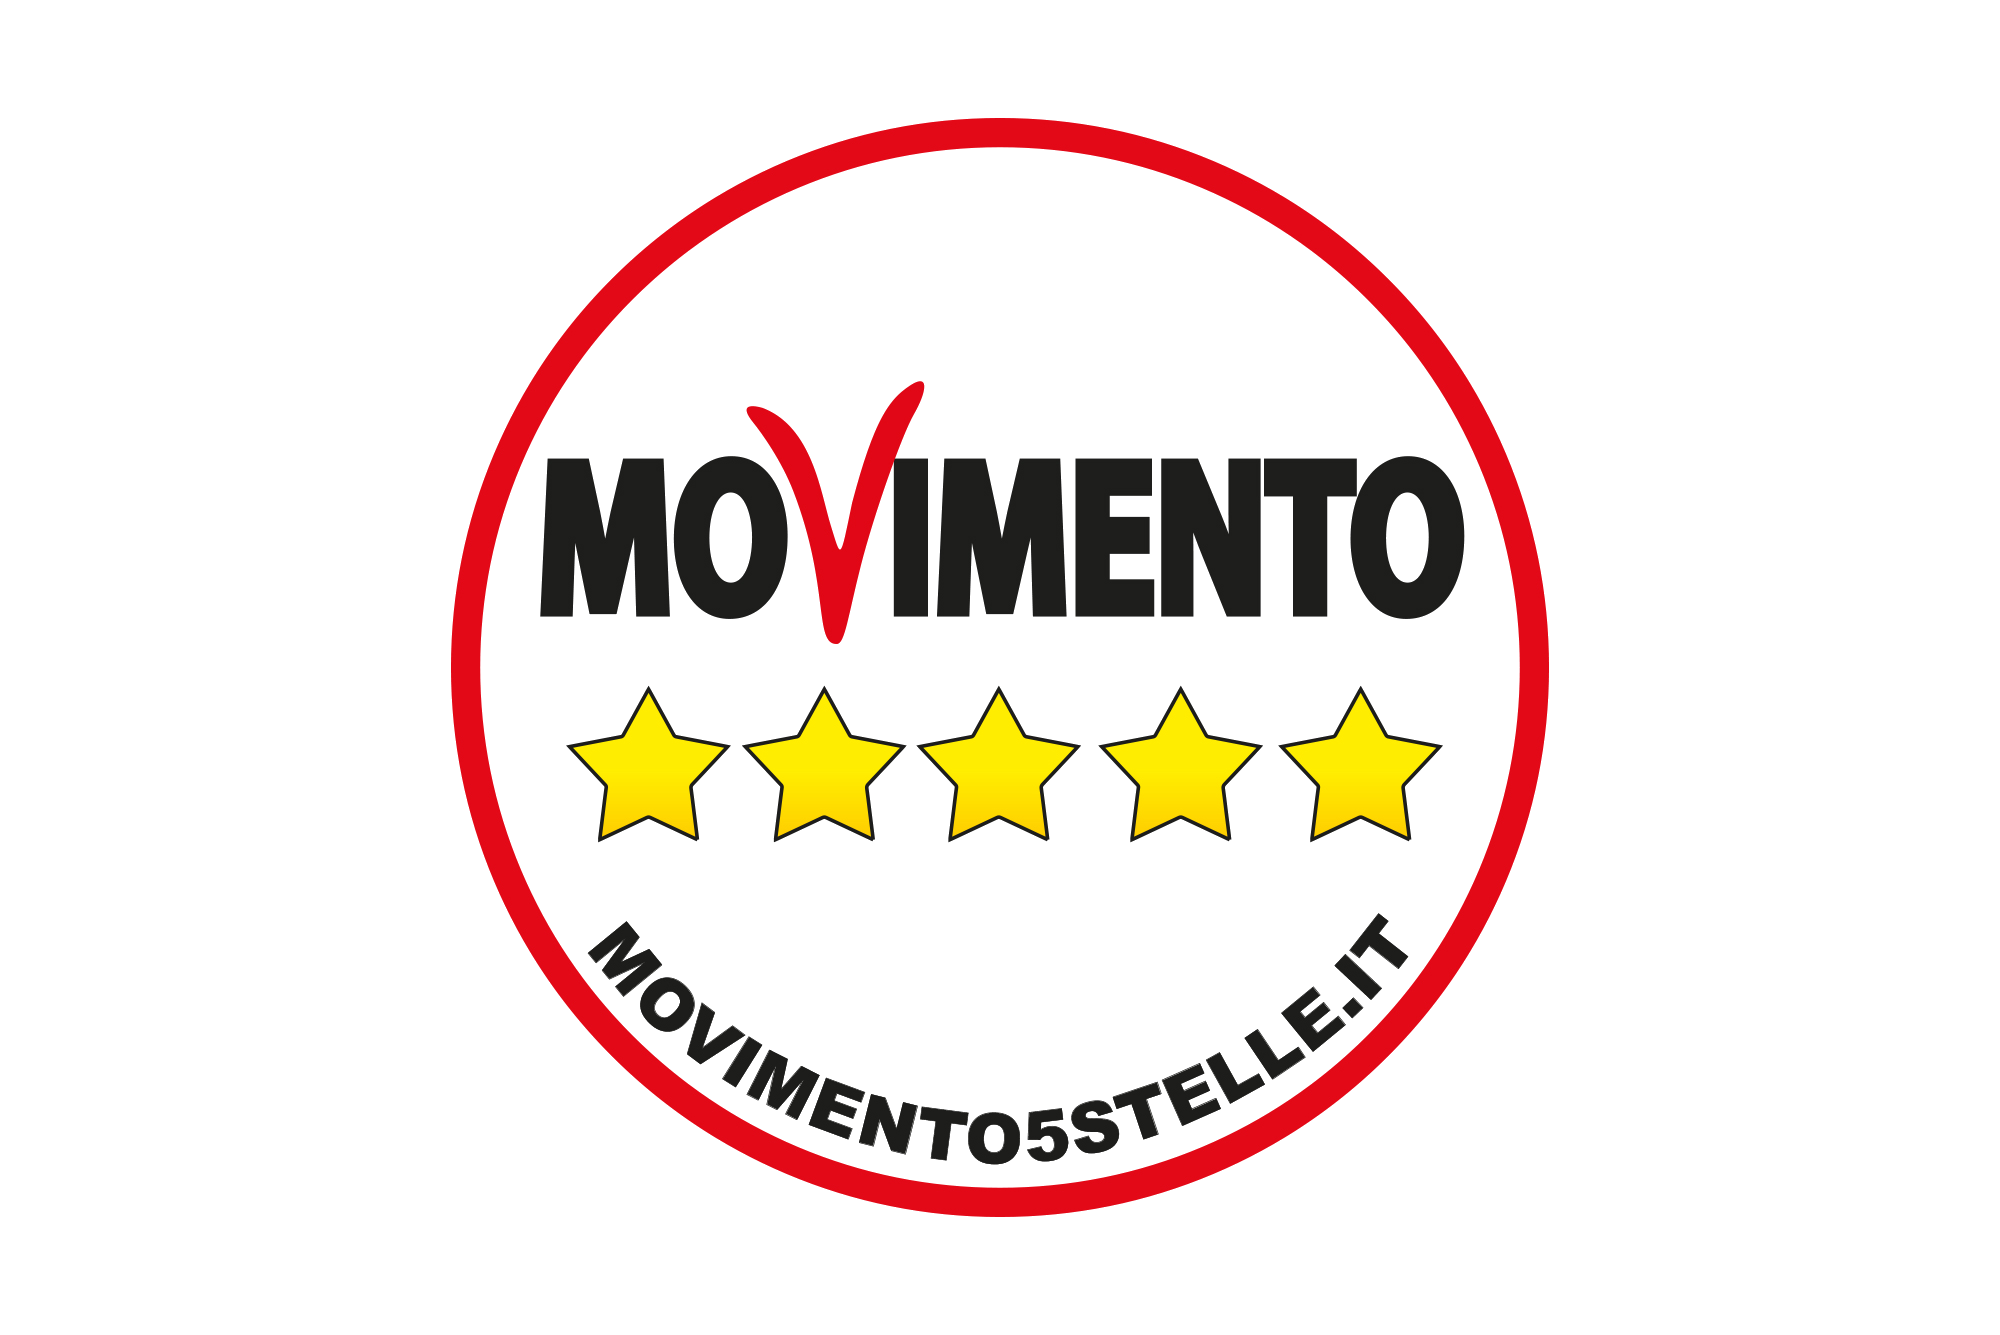 [IMG]http://www.orticaweb.it/wp-content/uploads/2016/12/5-stelle.png[/IMG]